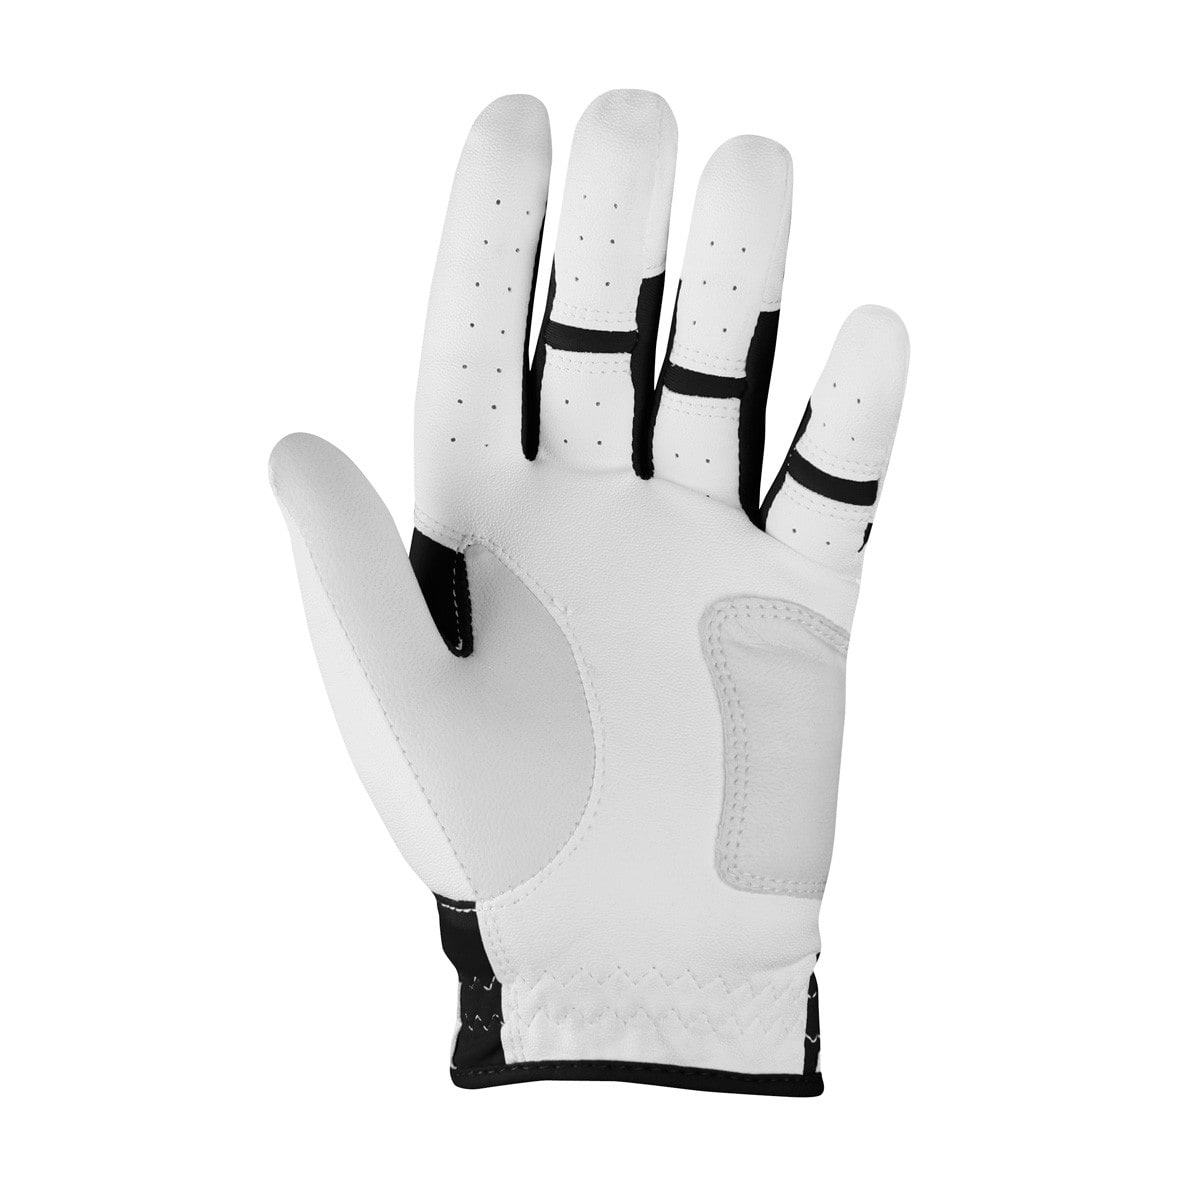 Intech Junior Golf Glove - Black/White